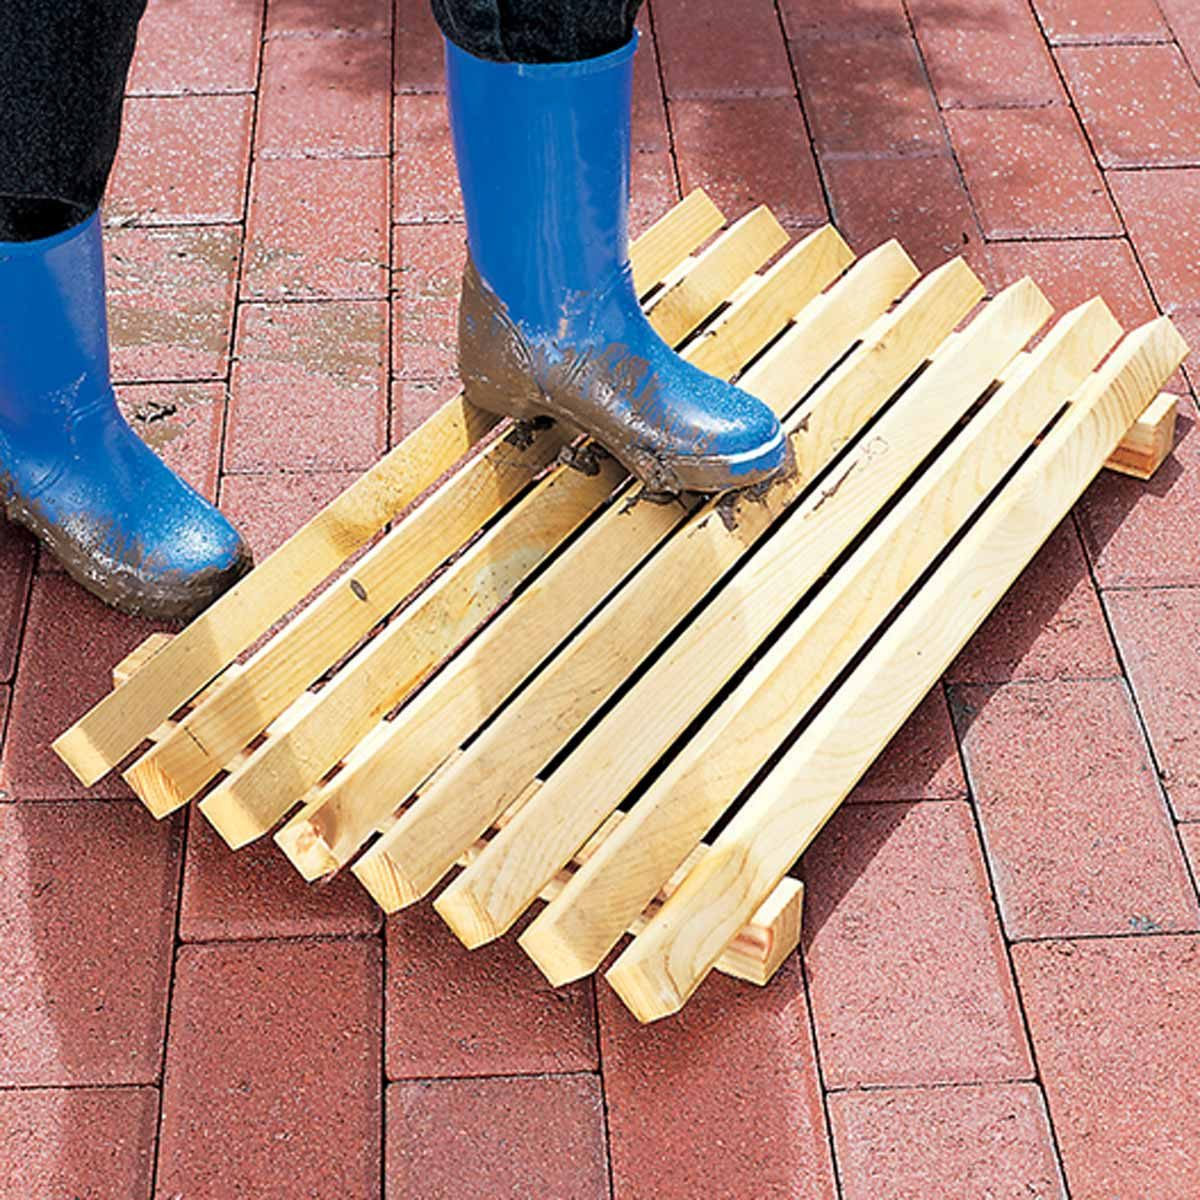 Swedish boot scraper